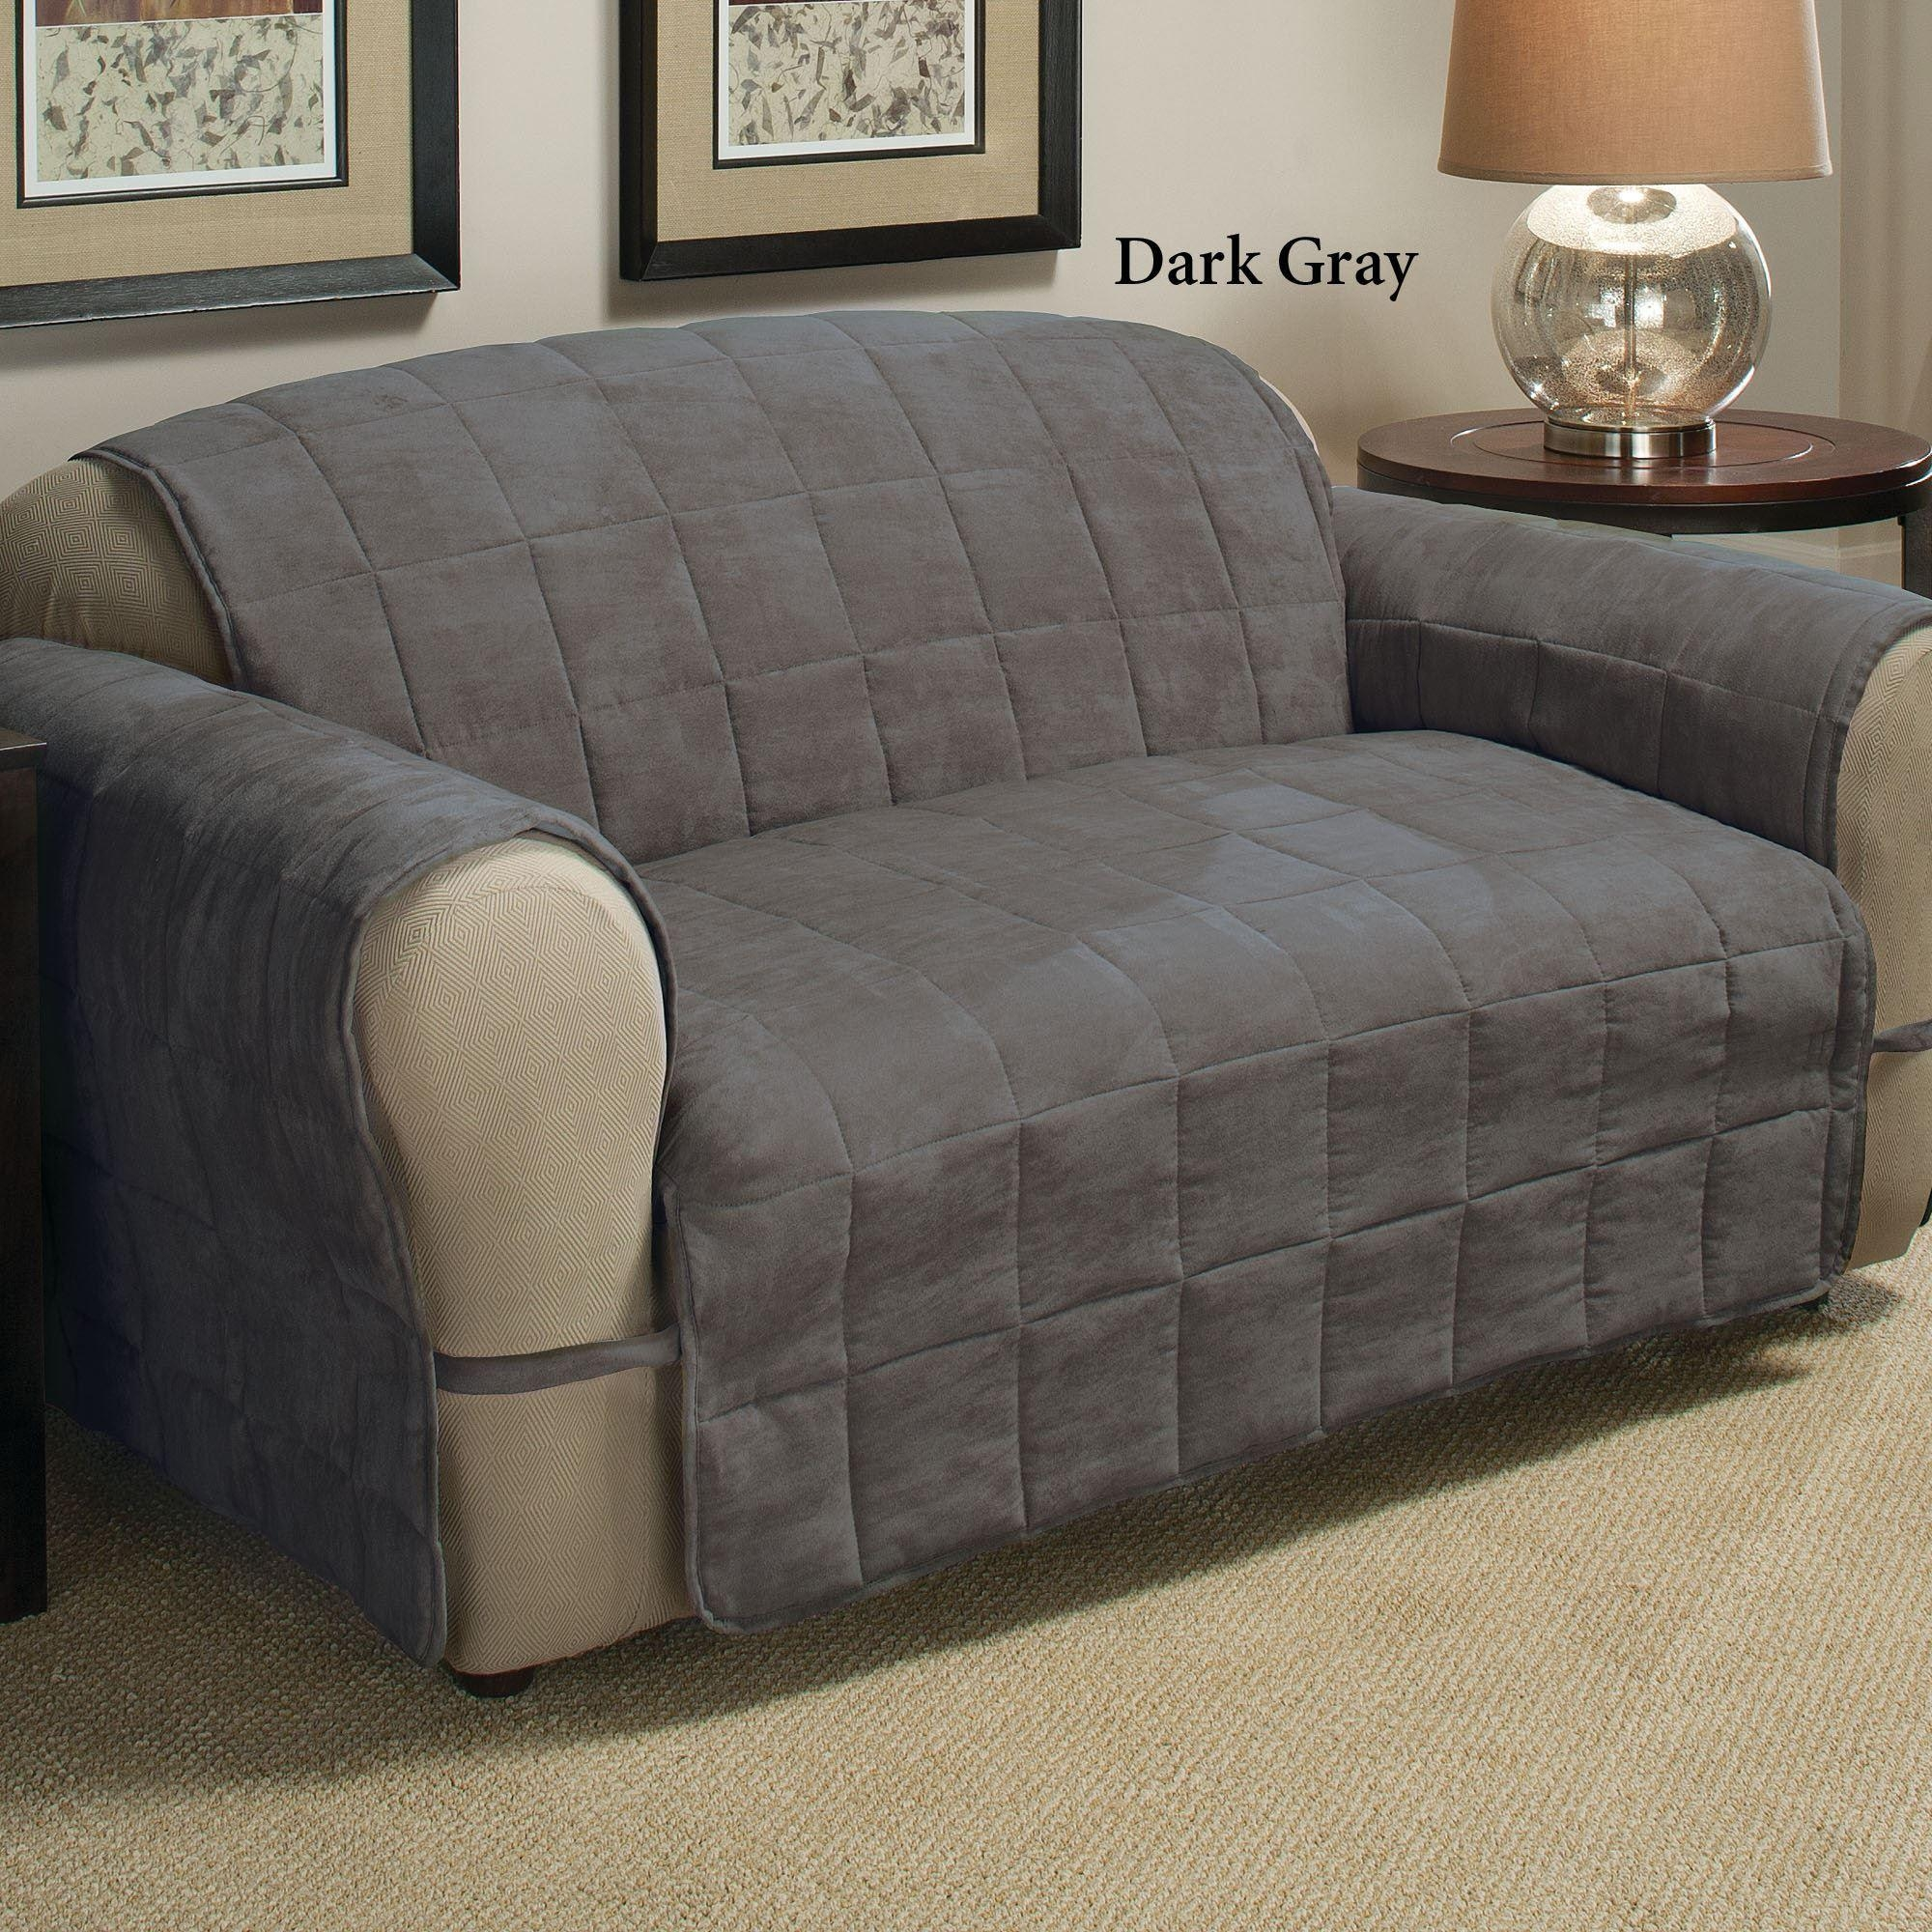 Microfiber Sofa Cover | Tehranmix Decoration Throughout Pet Proof Sofa Covers (Image 9 of 20)